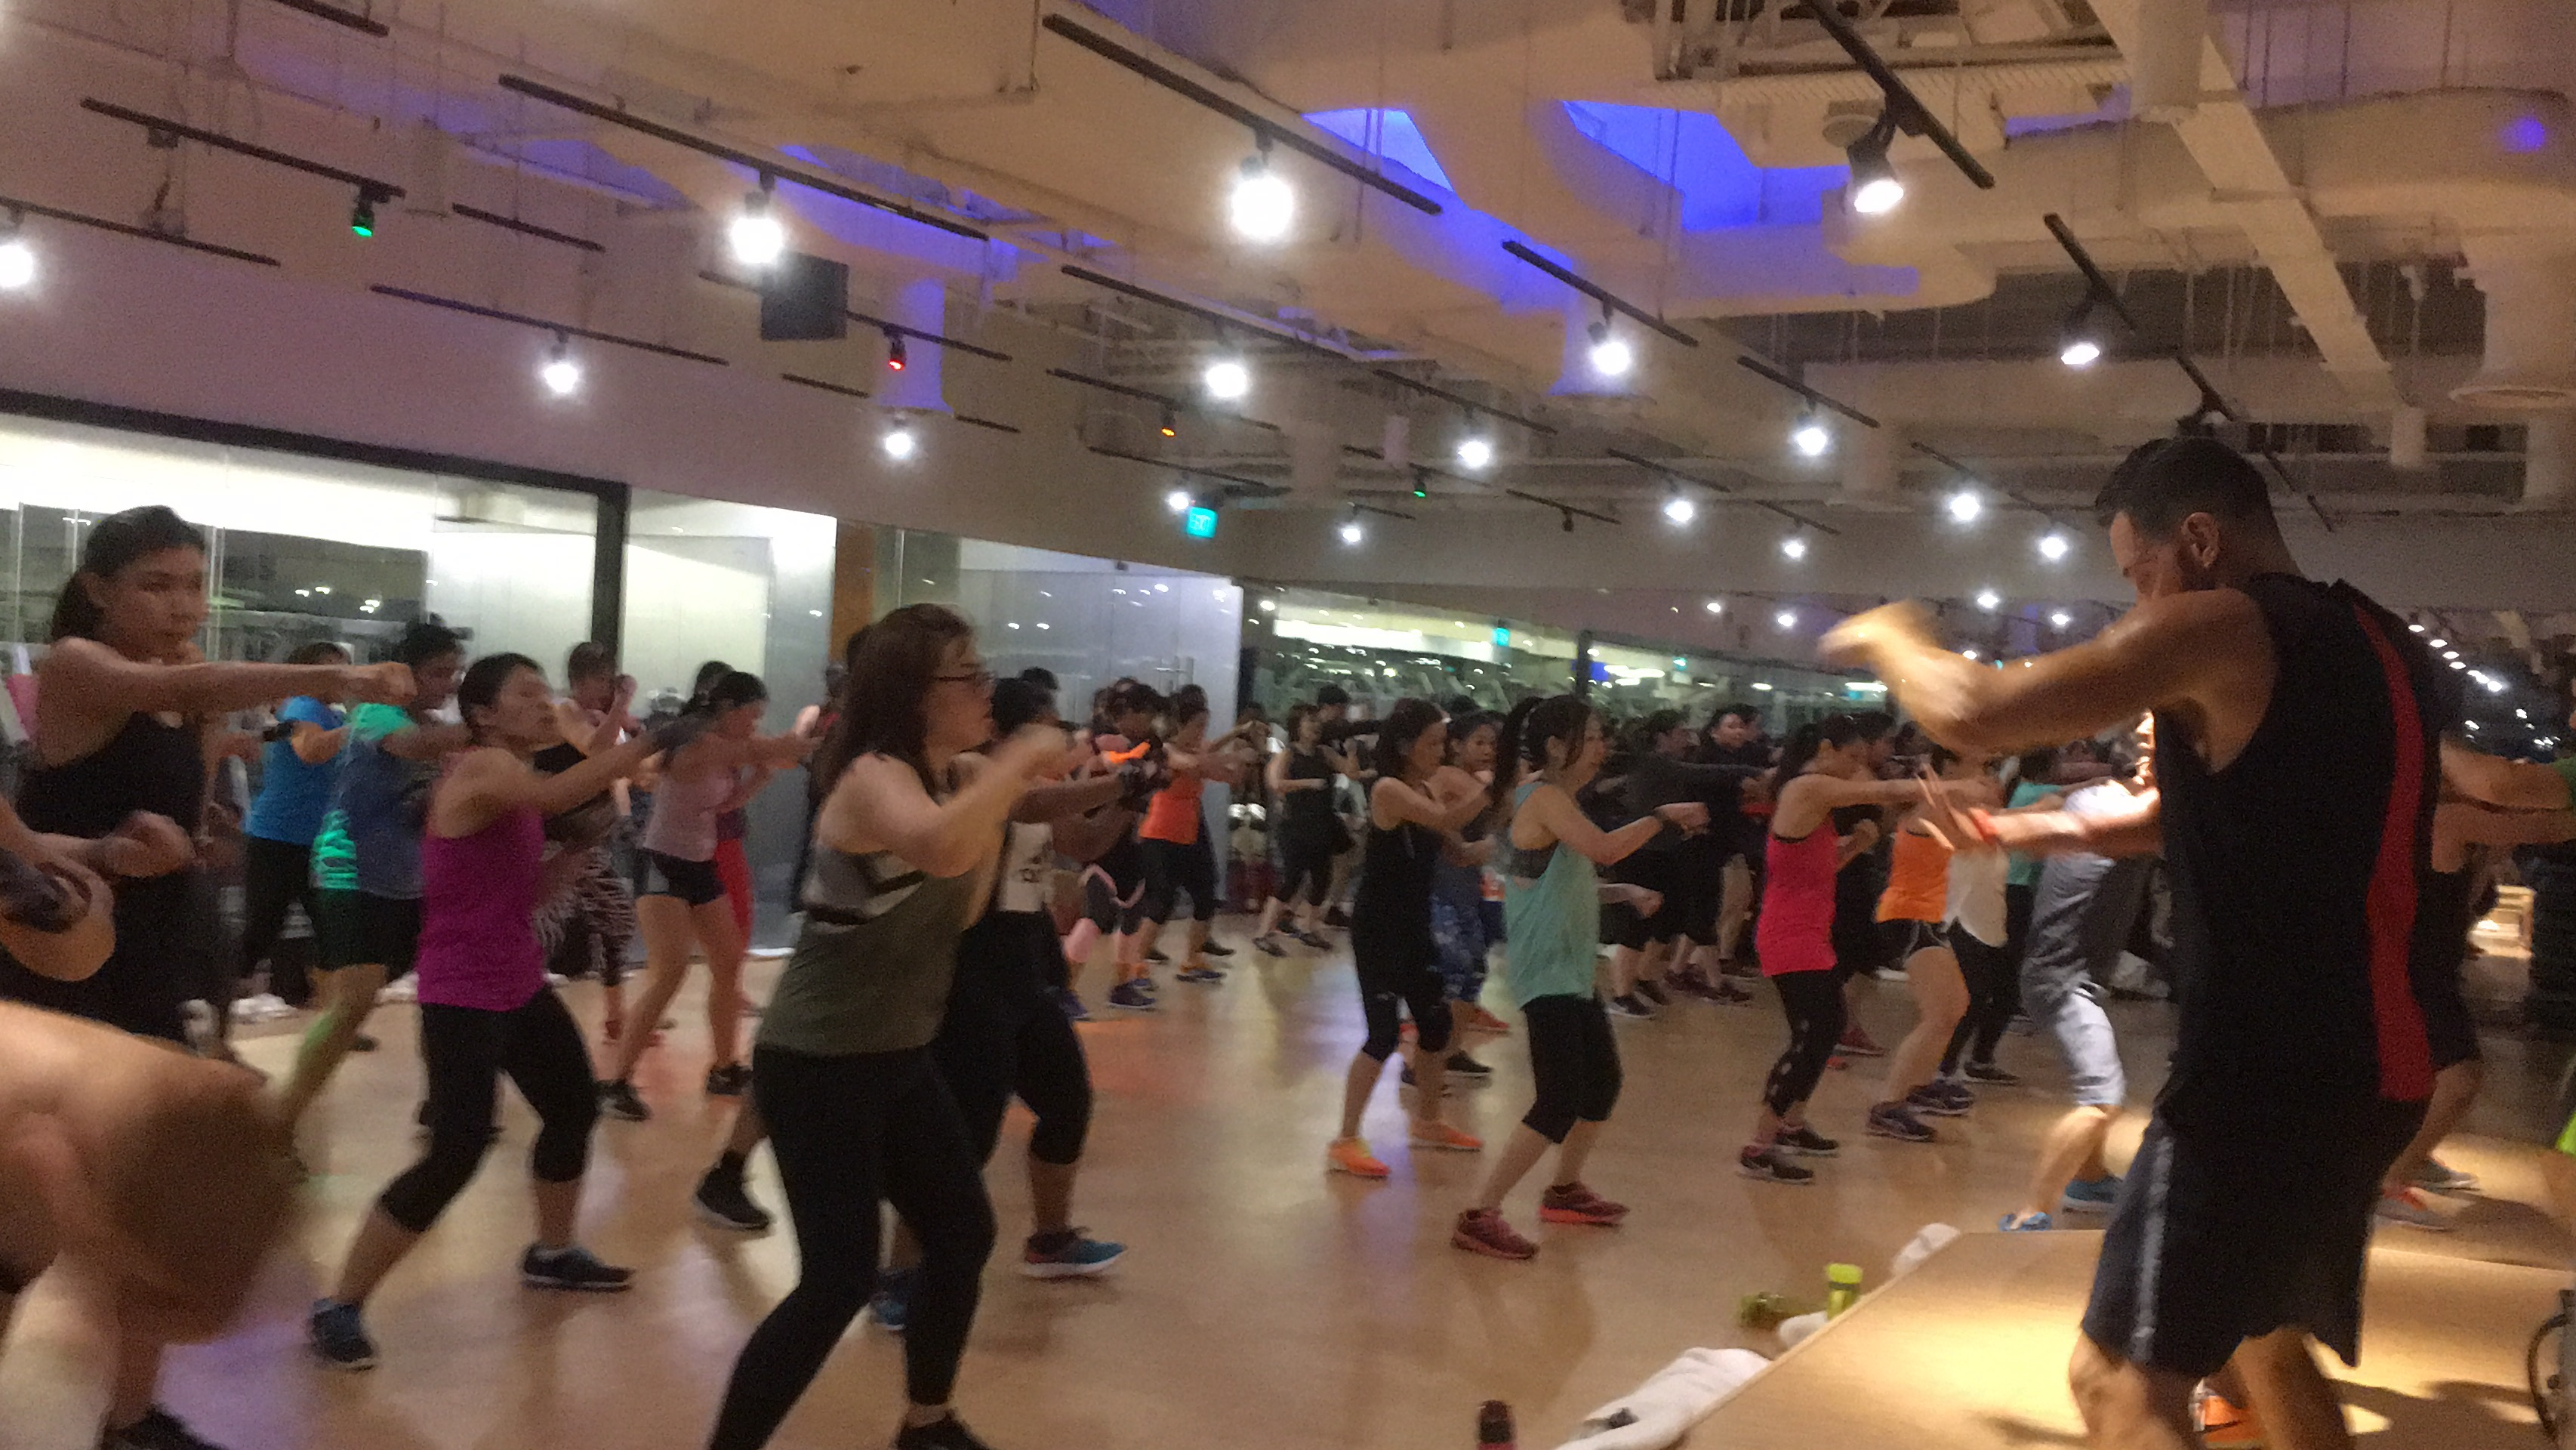 LES MILLSTM BODYCOMBATTM Is A Cardio Class That Mixes Different Types Of Martial Arts Such As Boxing Taekwondo Karate And Muay Thai